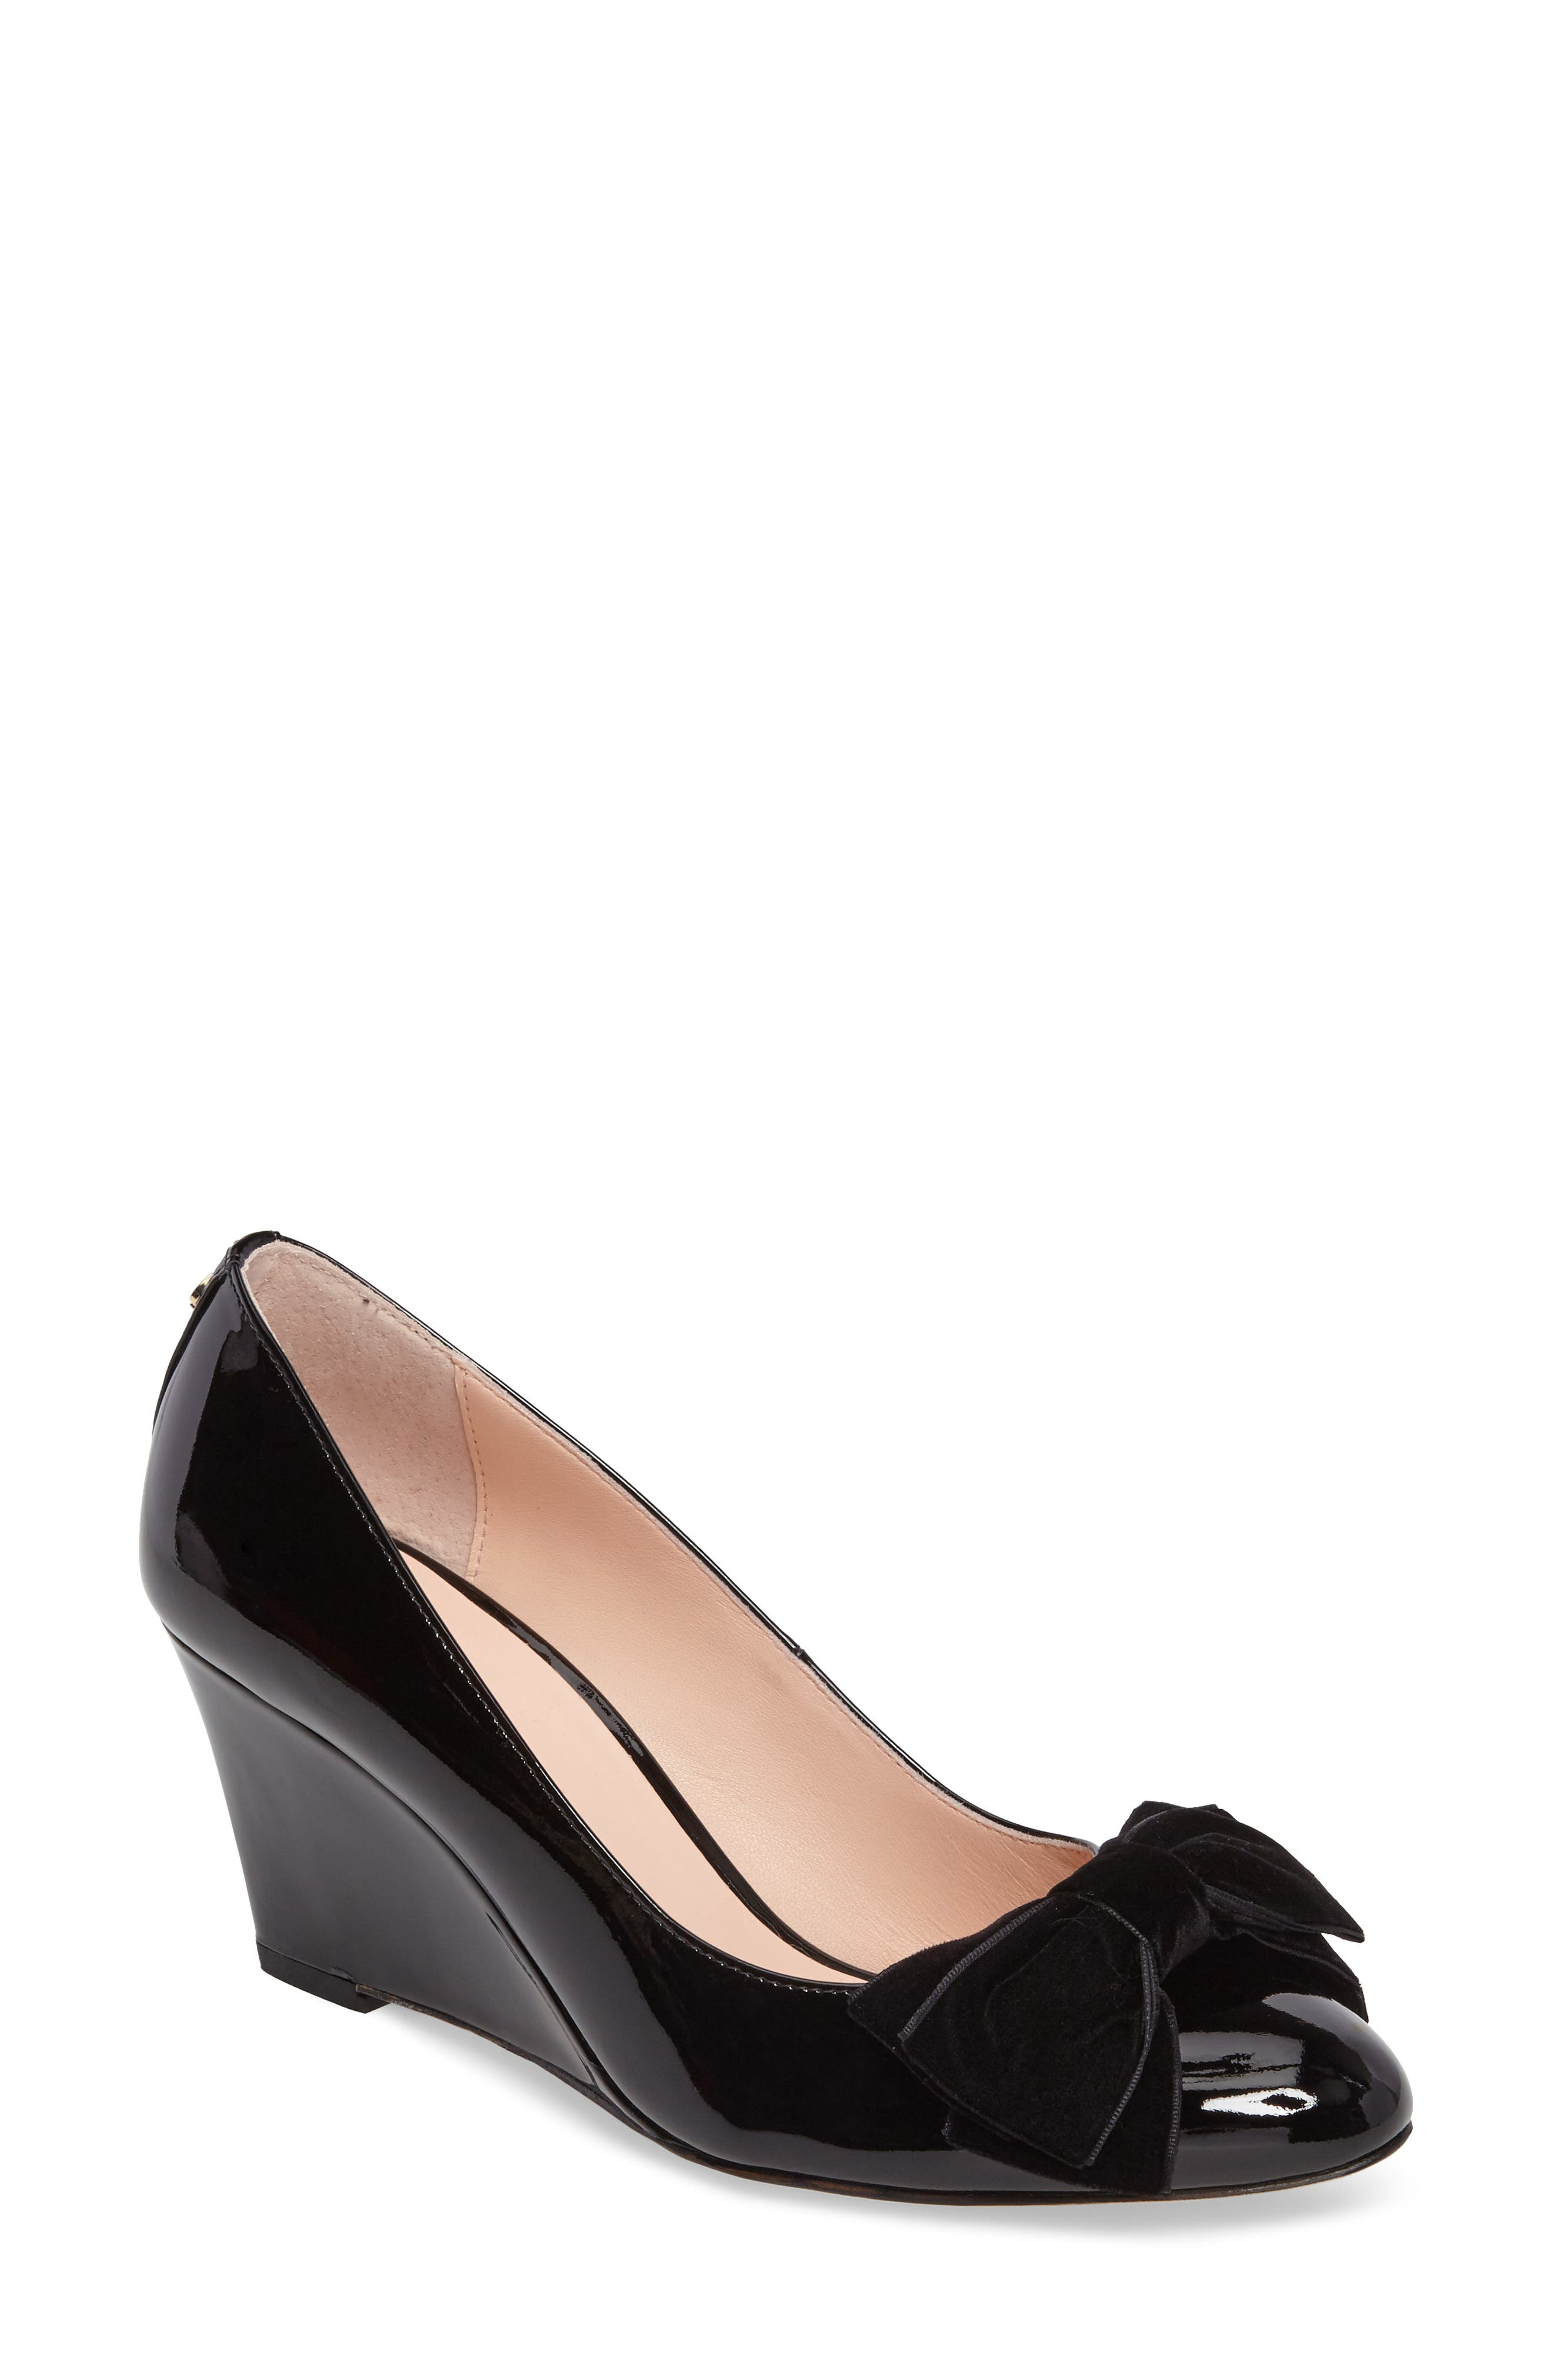 Main Image - kate spade new york weller pump (Women)